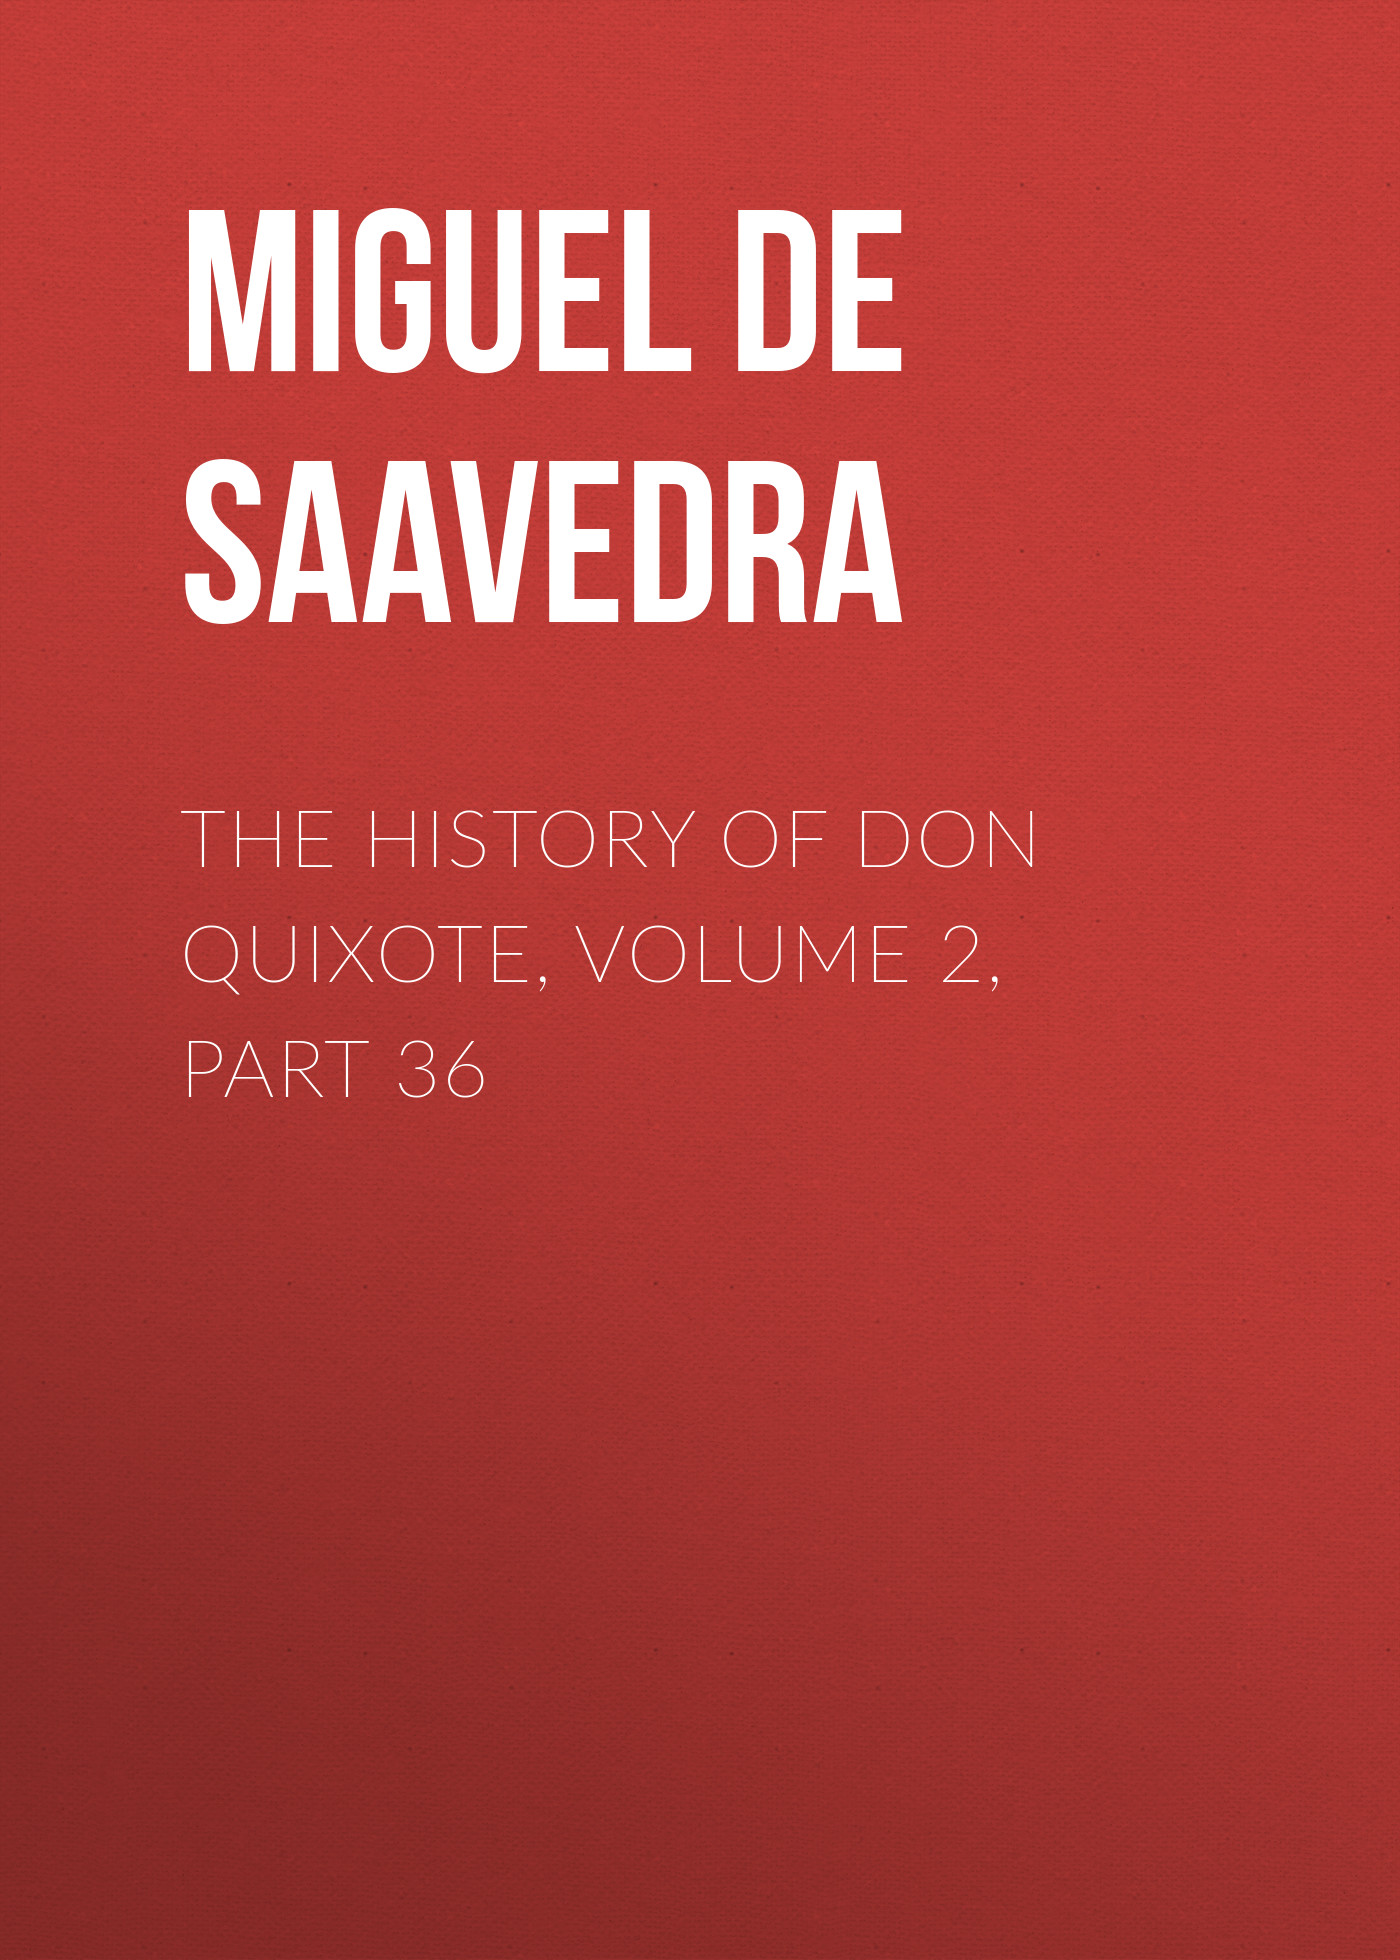 the history of don quixote volume 2 part 36